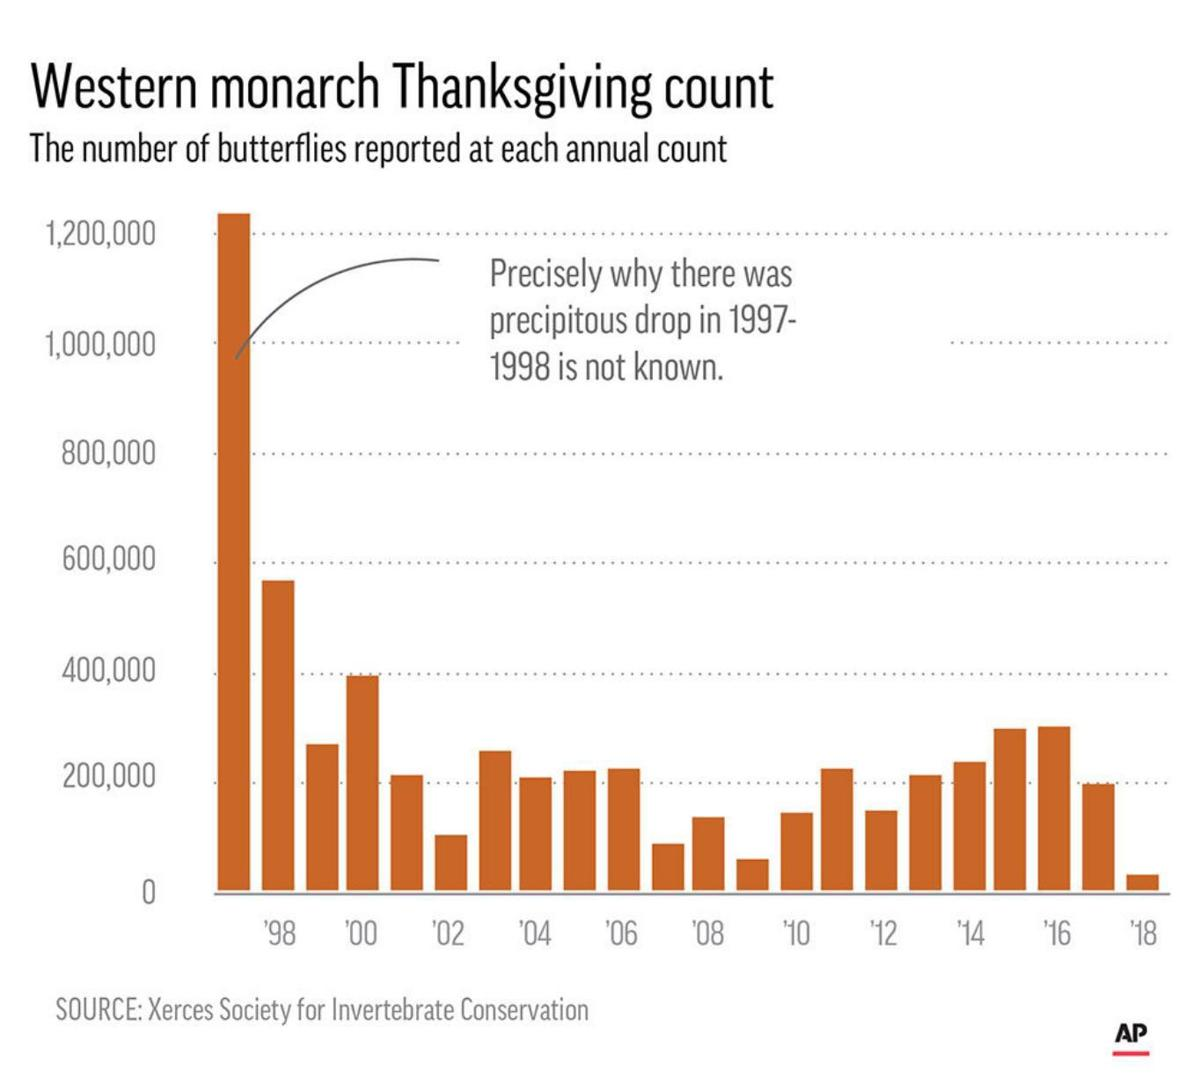 Western monarch Thanksgiving count